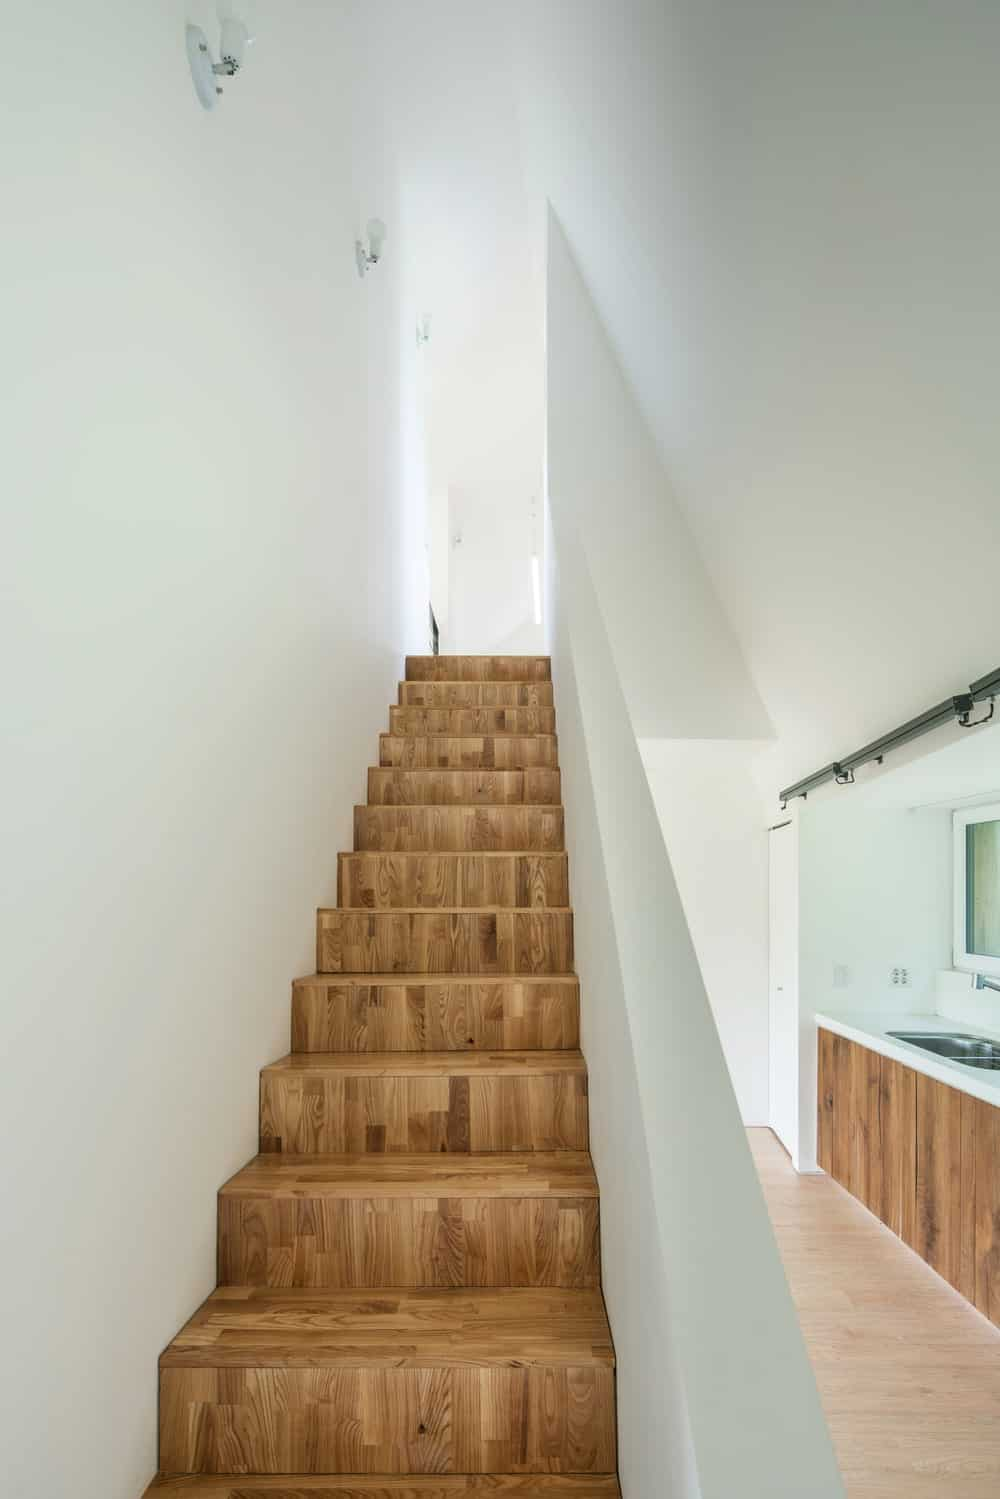 This is a close look at the wooden steps of the stairscase that makes it stand out against the bright walls on both sides.